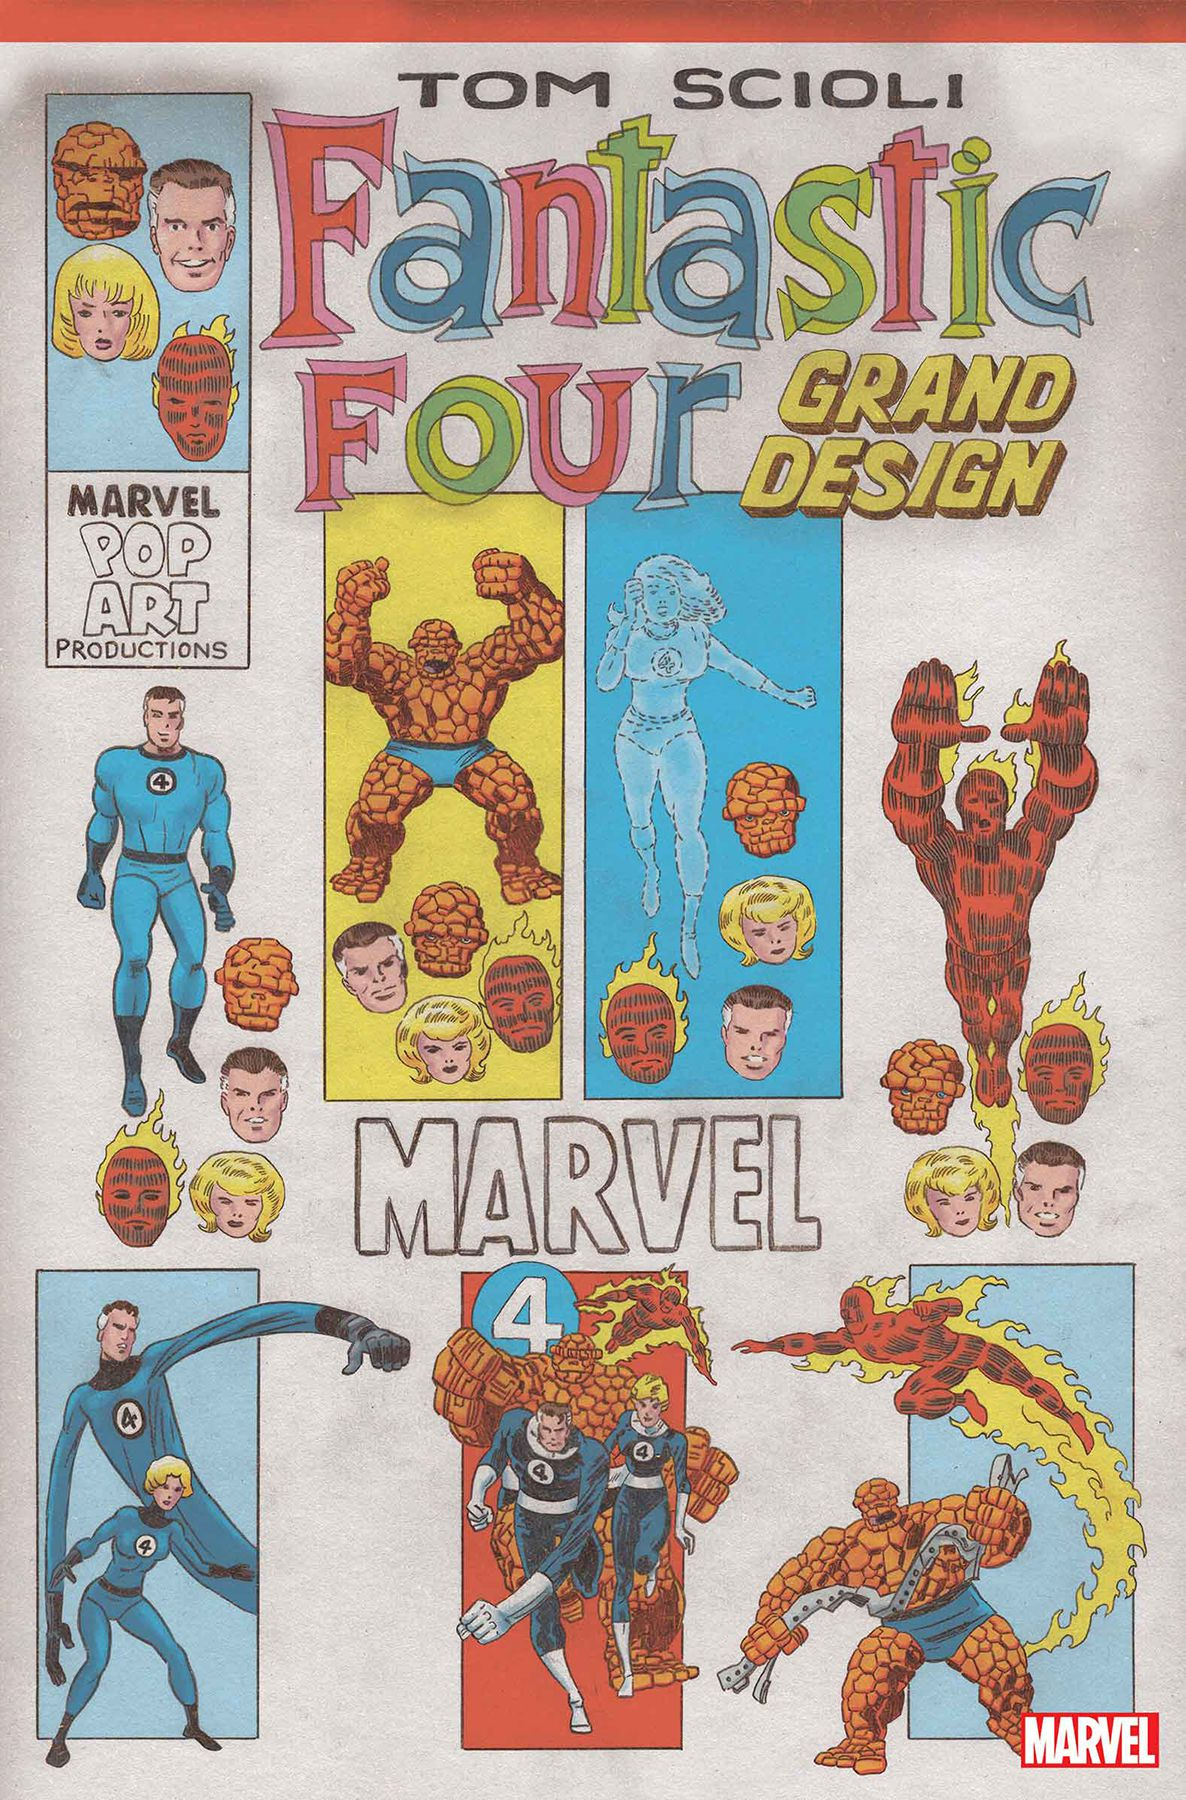 Different incarnations of the Fantastic Four on the cover of Fantastic Four: Grand Design #1, Marvel Comics (2019).